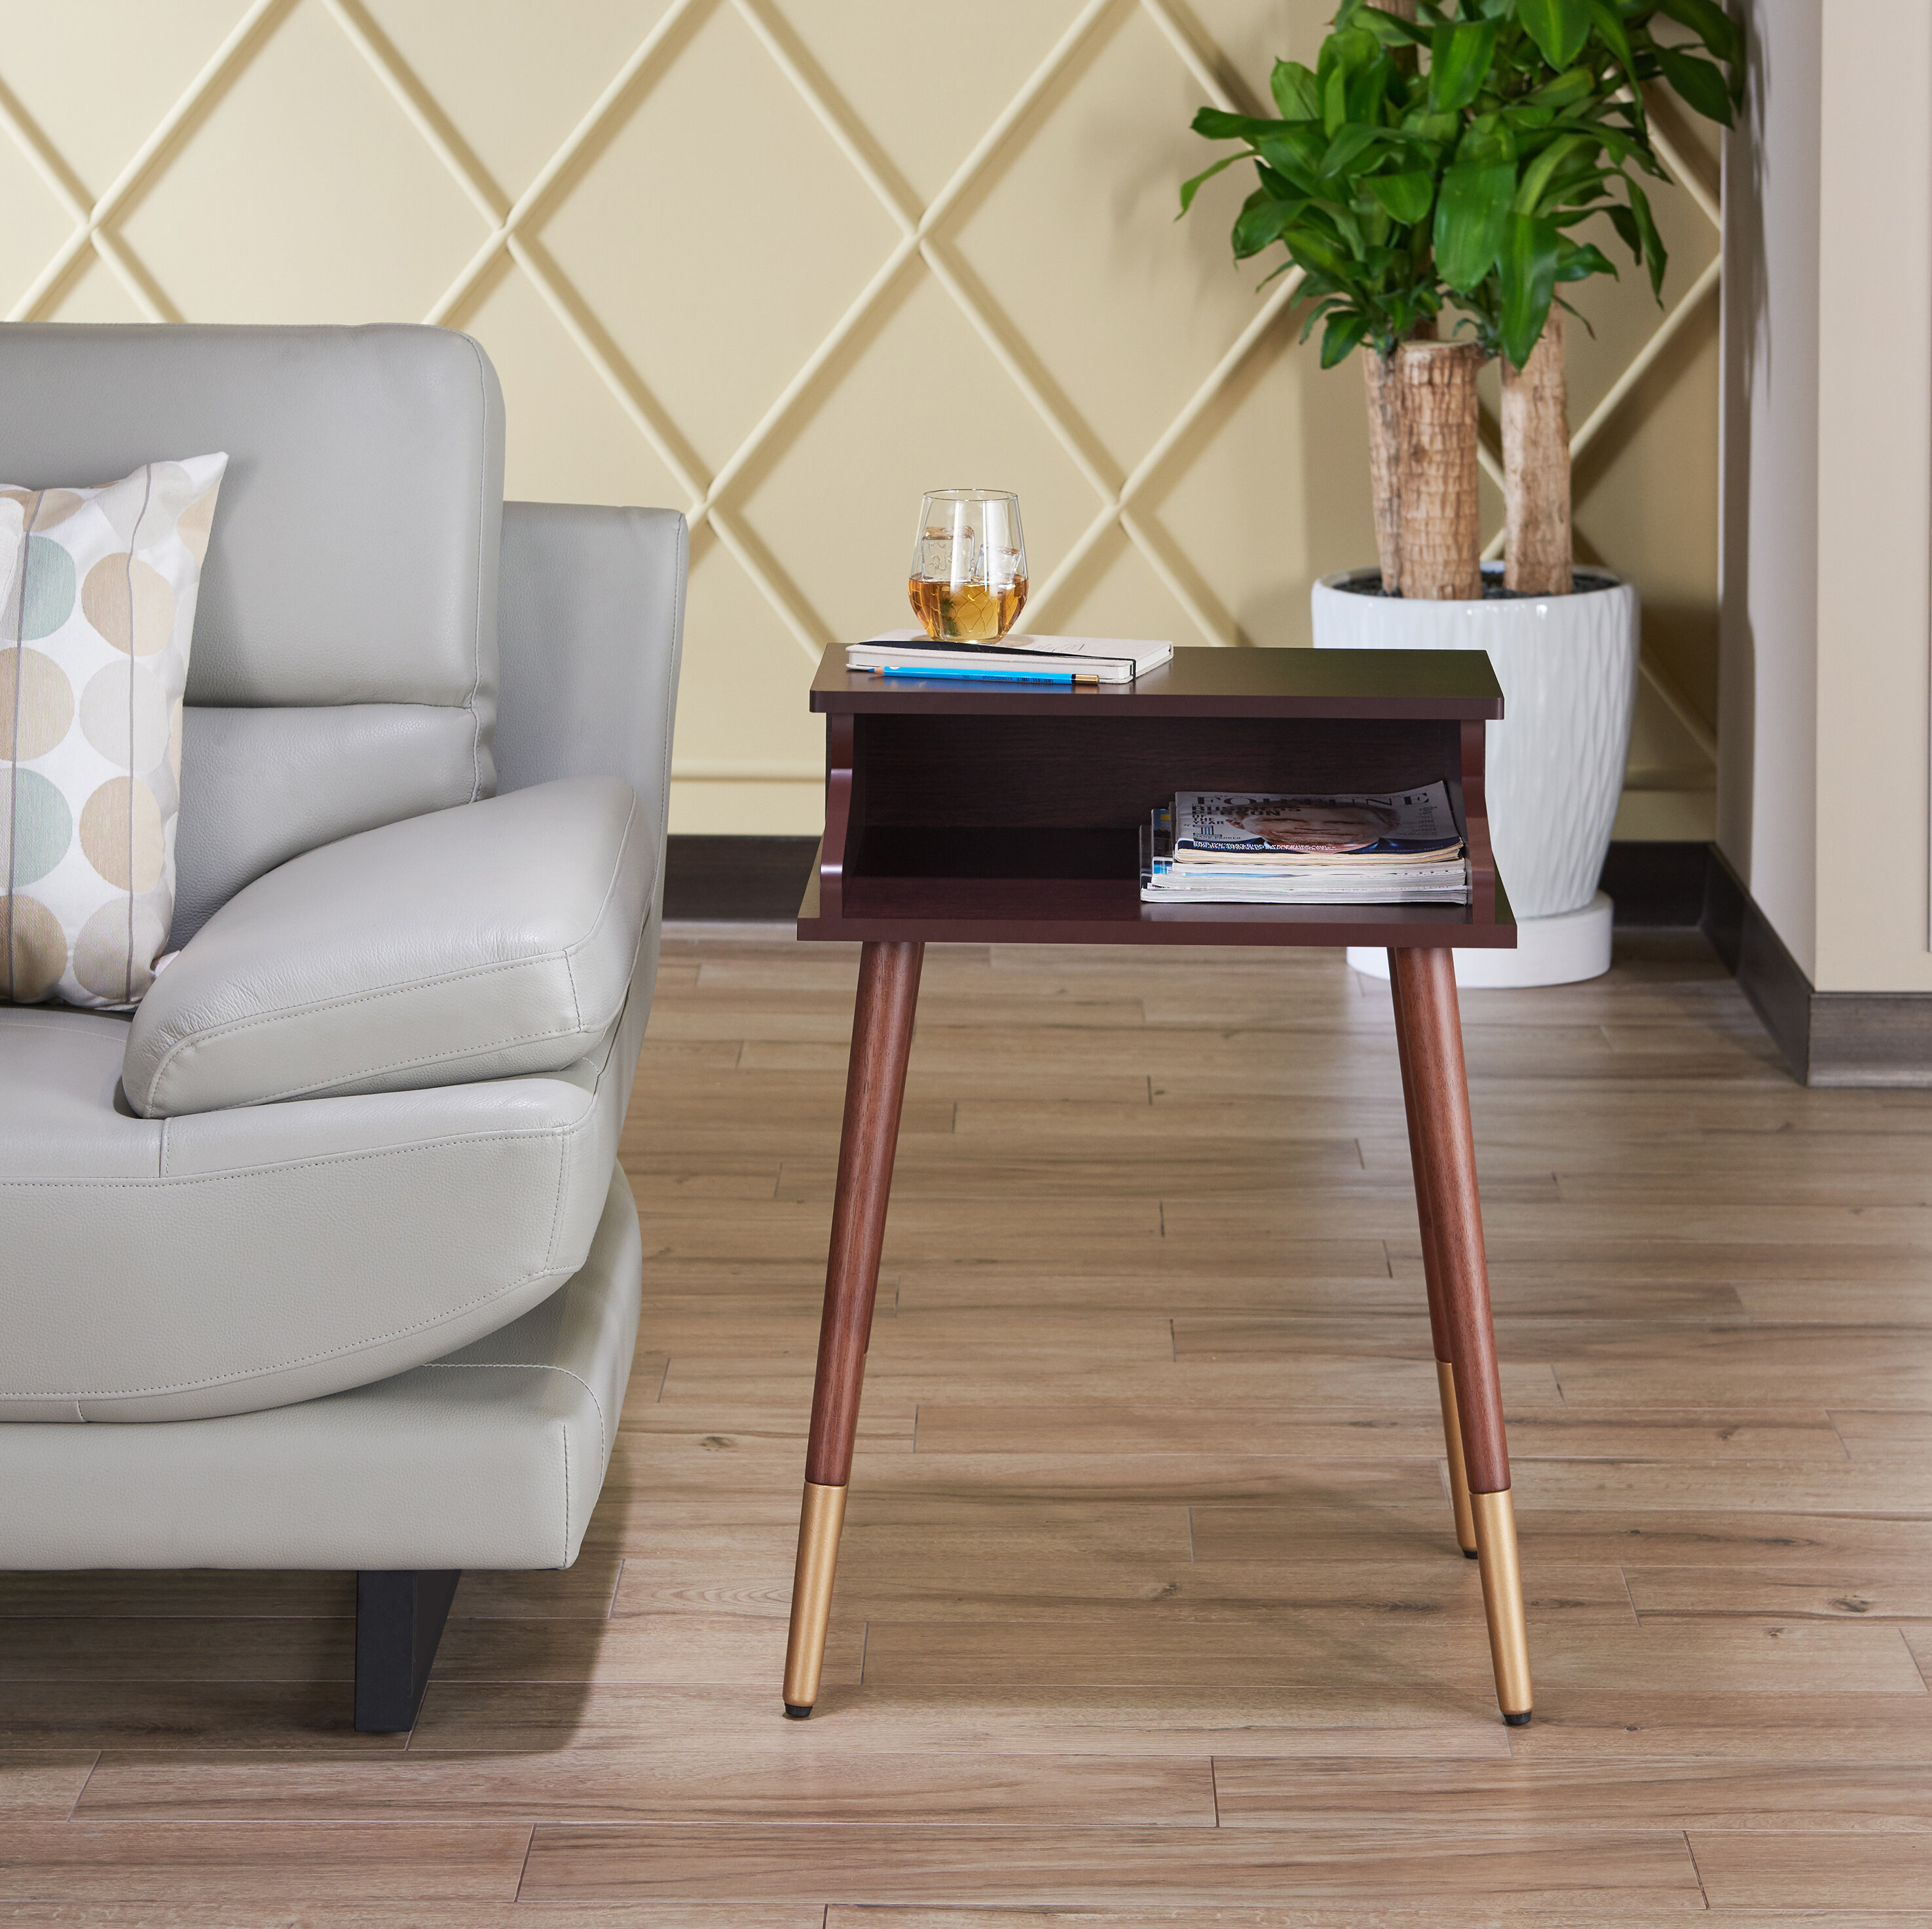 Ivy Bronx Kennison Mid Century Modern End Table Reviews Wayfair